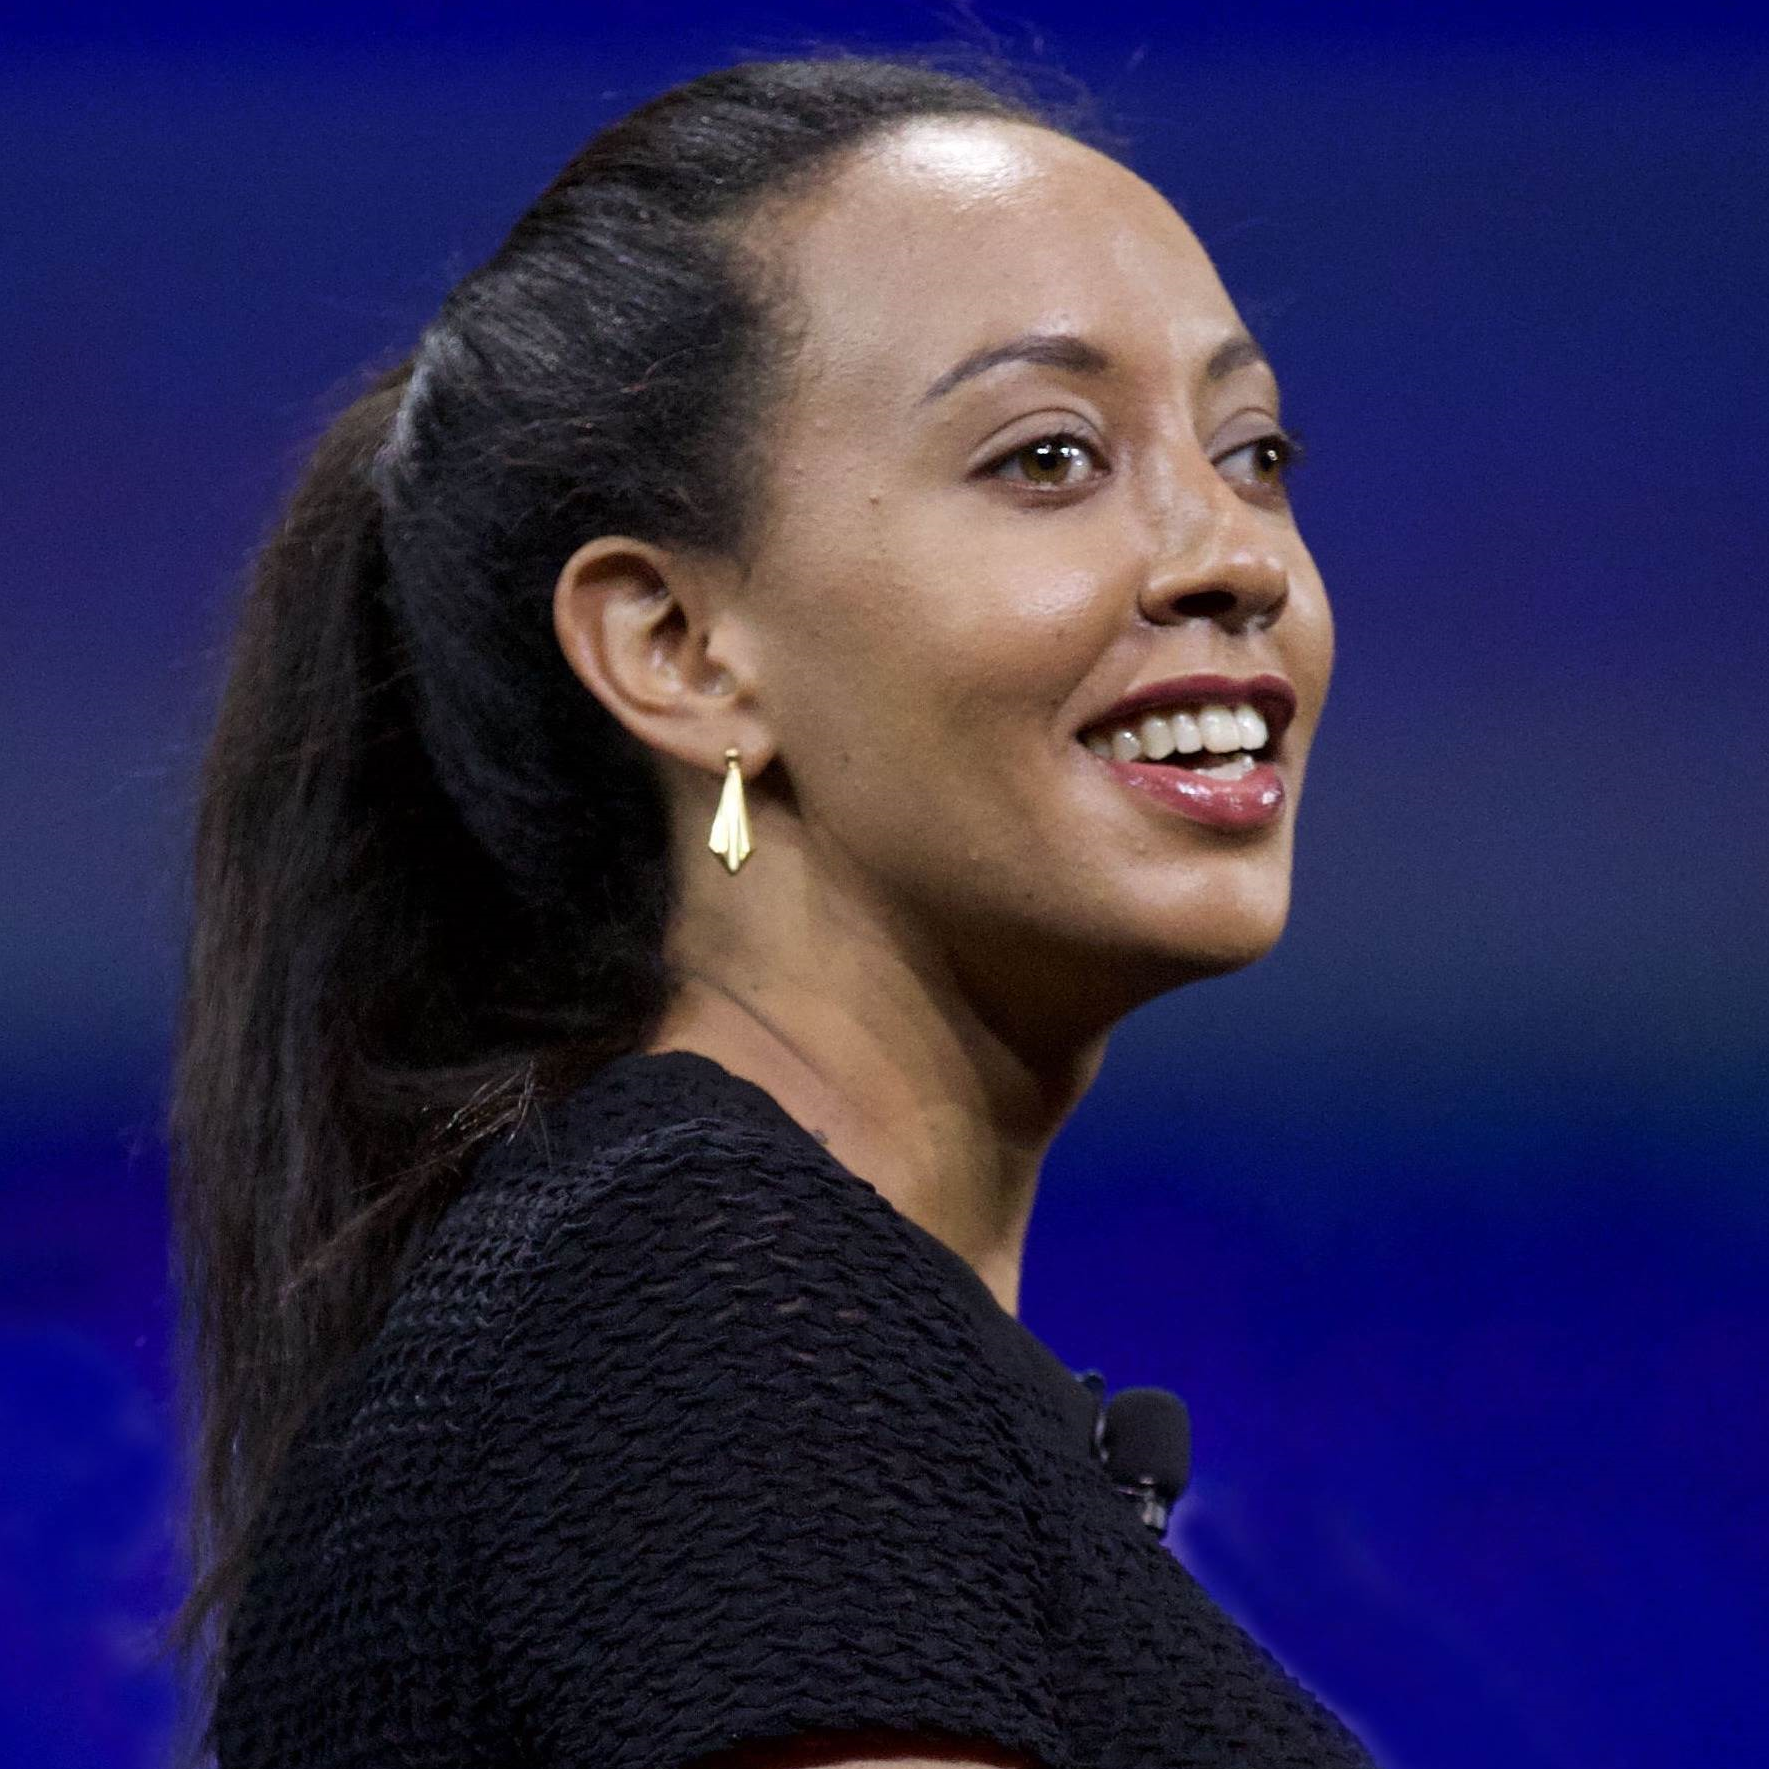 Colour photo of Haben Girma